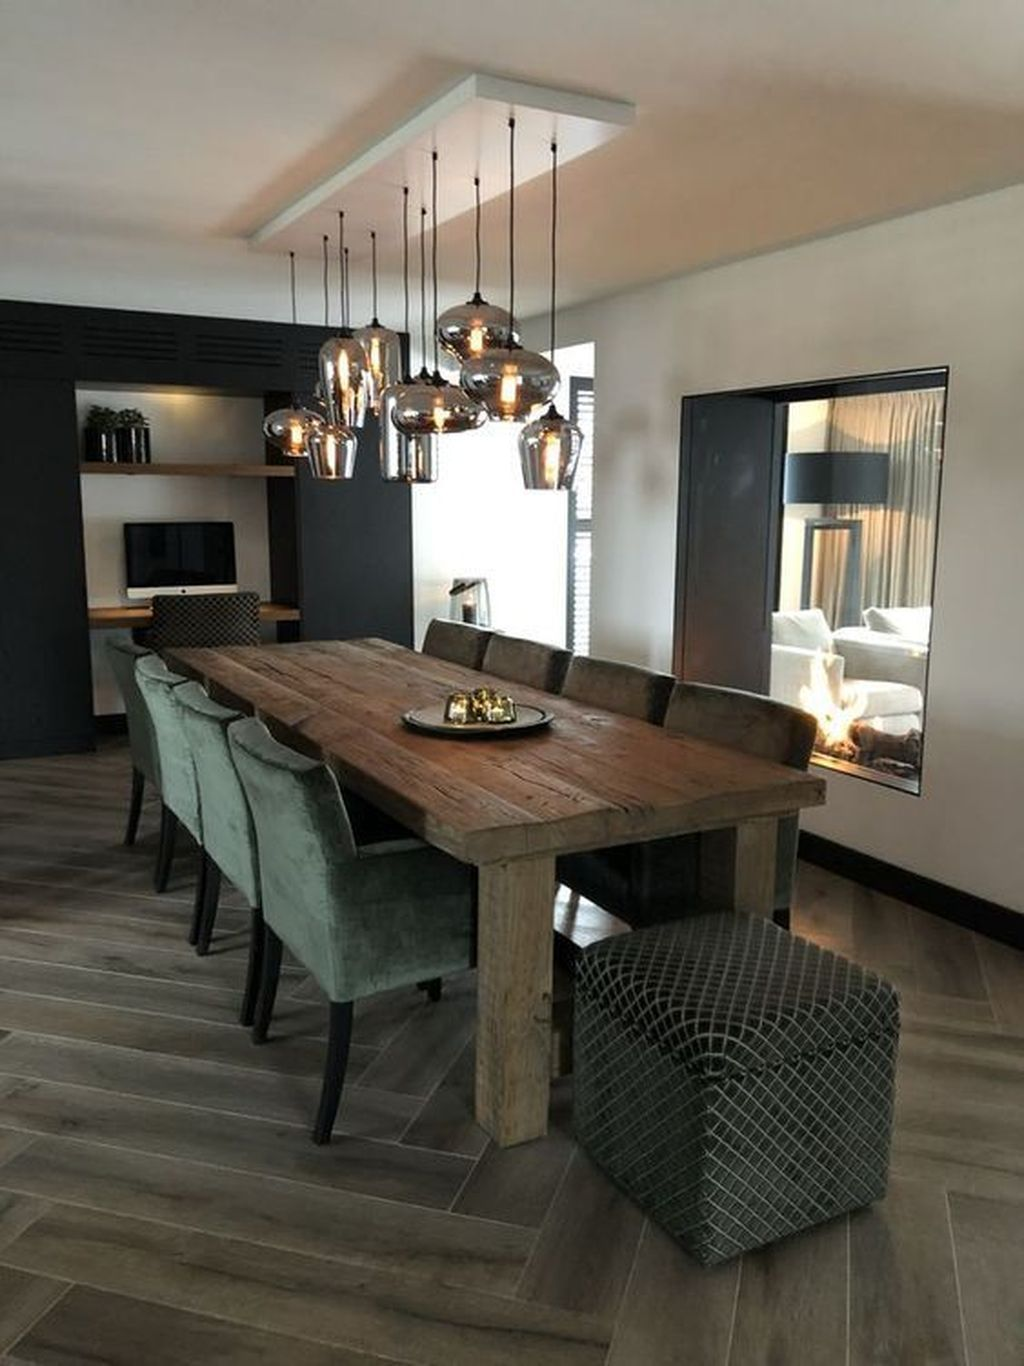 32 Fabulous Contemporary Dining Room Decorating Ideas In 2020